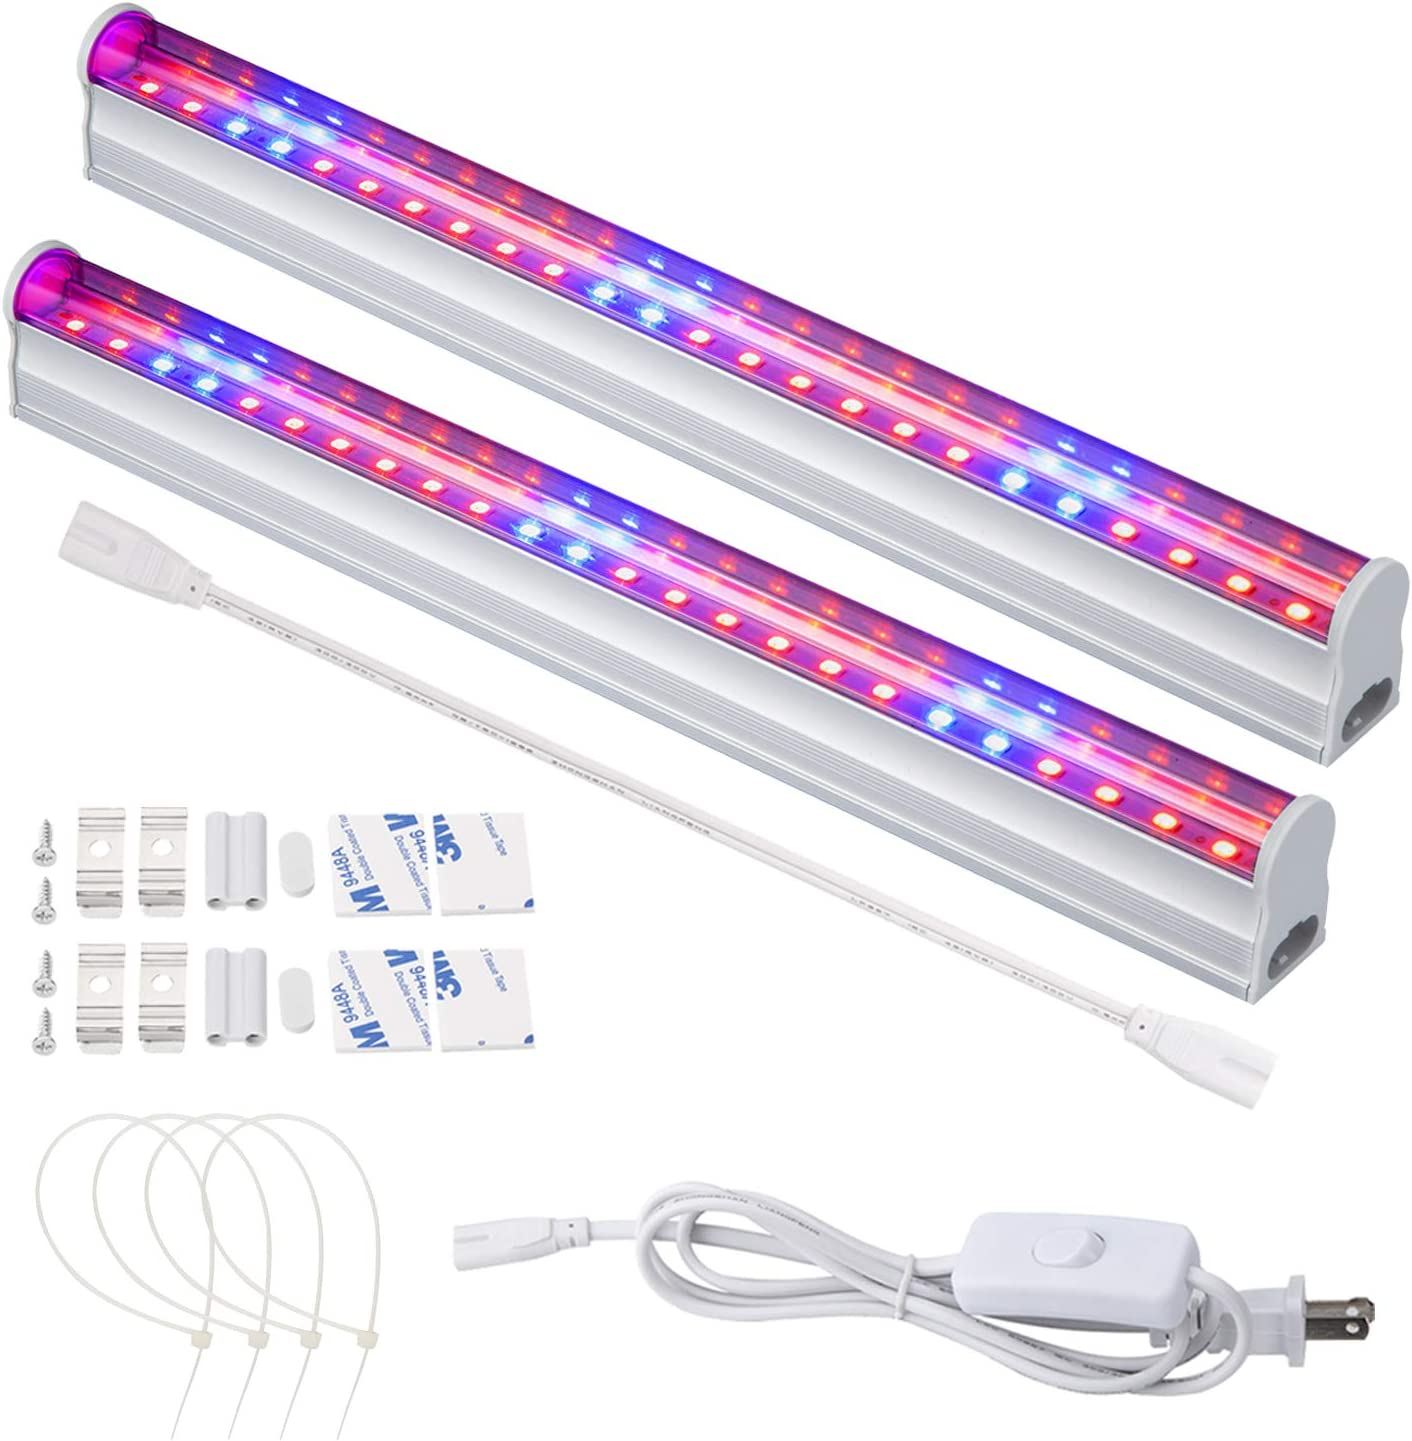 LED Grow Light, 2pcs T5 Tube SMD2835 High Brightness Red Blue Spectrum Plant Growing Lights Bar for Indoor Plants Veg and Flower Seeding with US Plug Switch Wire 11.5inch /Strip